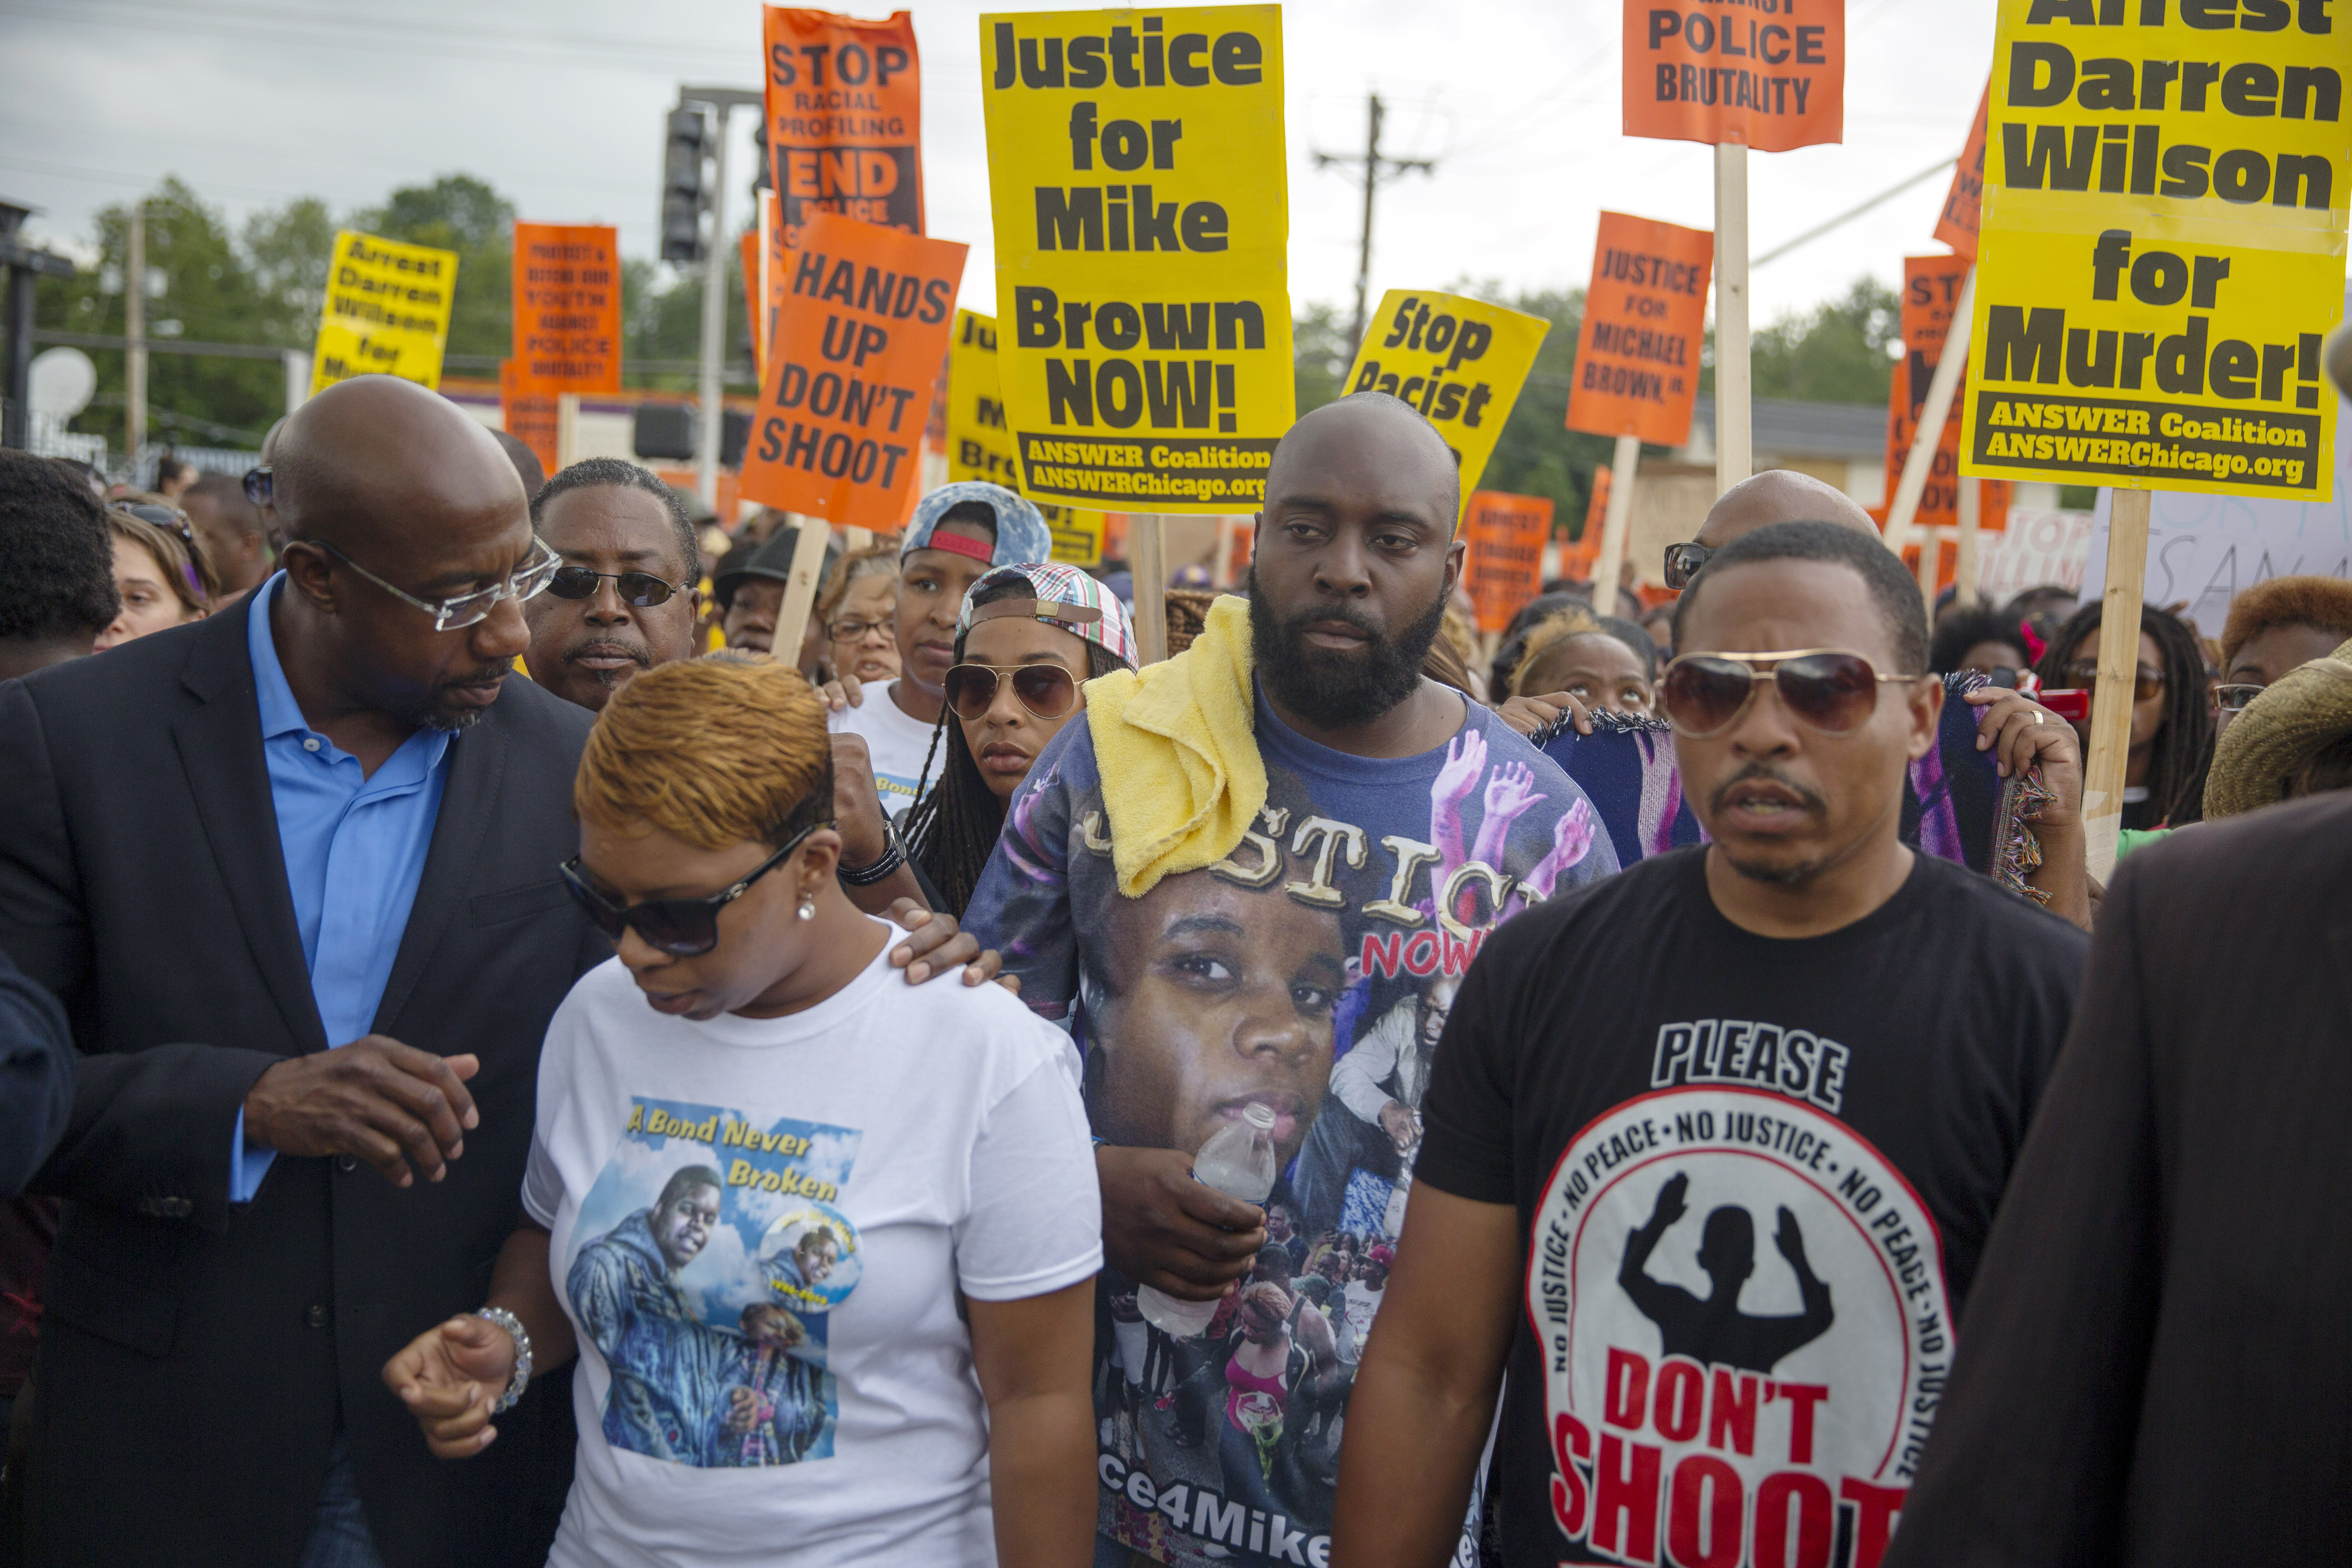 Lesley McSpadden (2L) and Michael Brown Sr. (C), parents of Michael Brown, march in a protest for their son on August 30, 2014 in Ferguson, Missouri. (Aaron P. Bernstein/Getty Images)